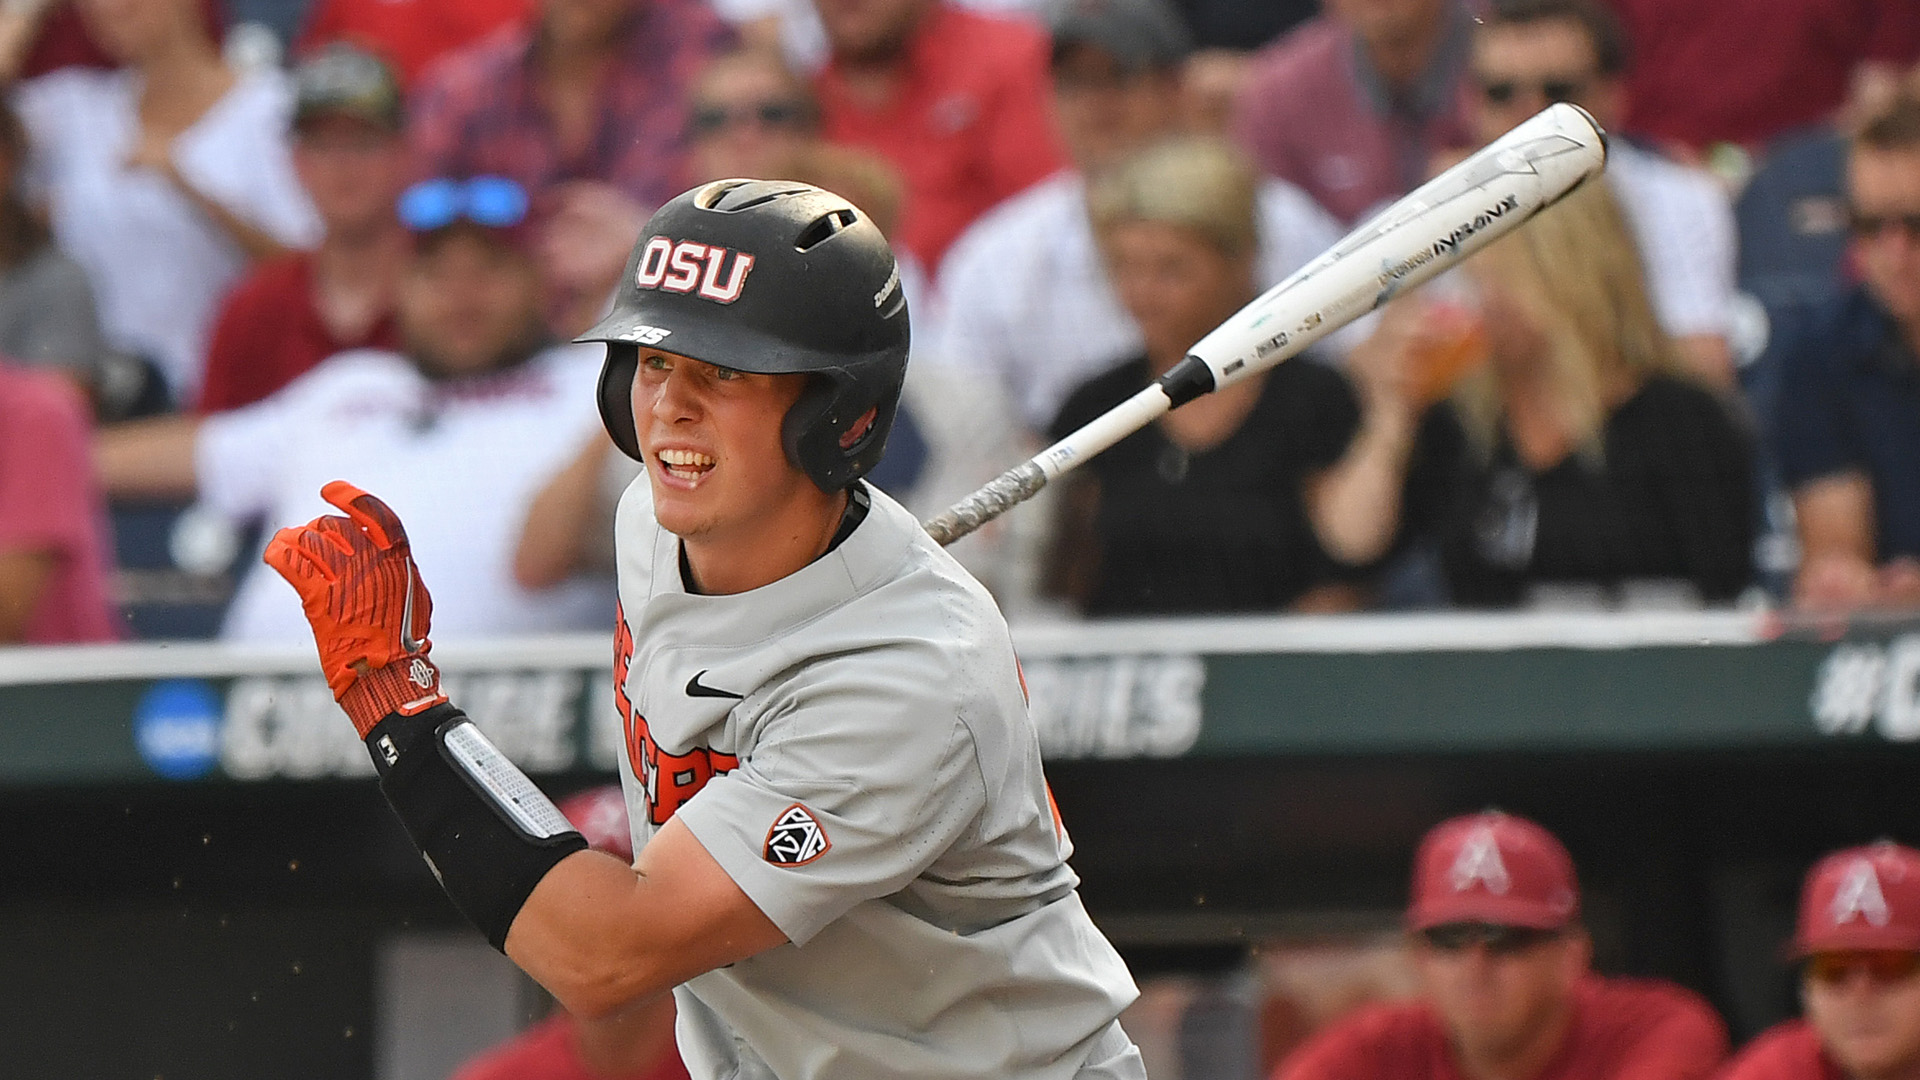 Oregon State baseball wins the College World Series